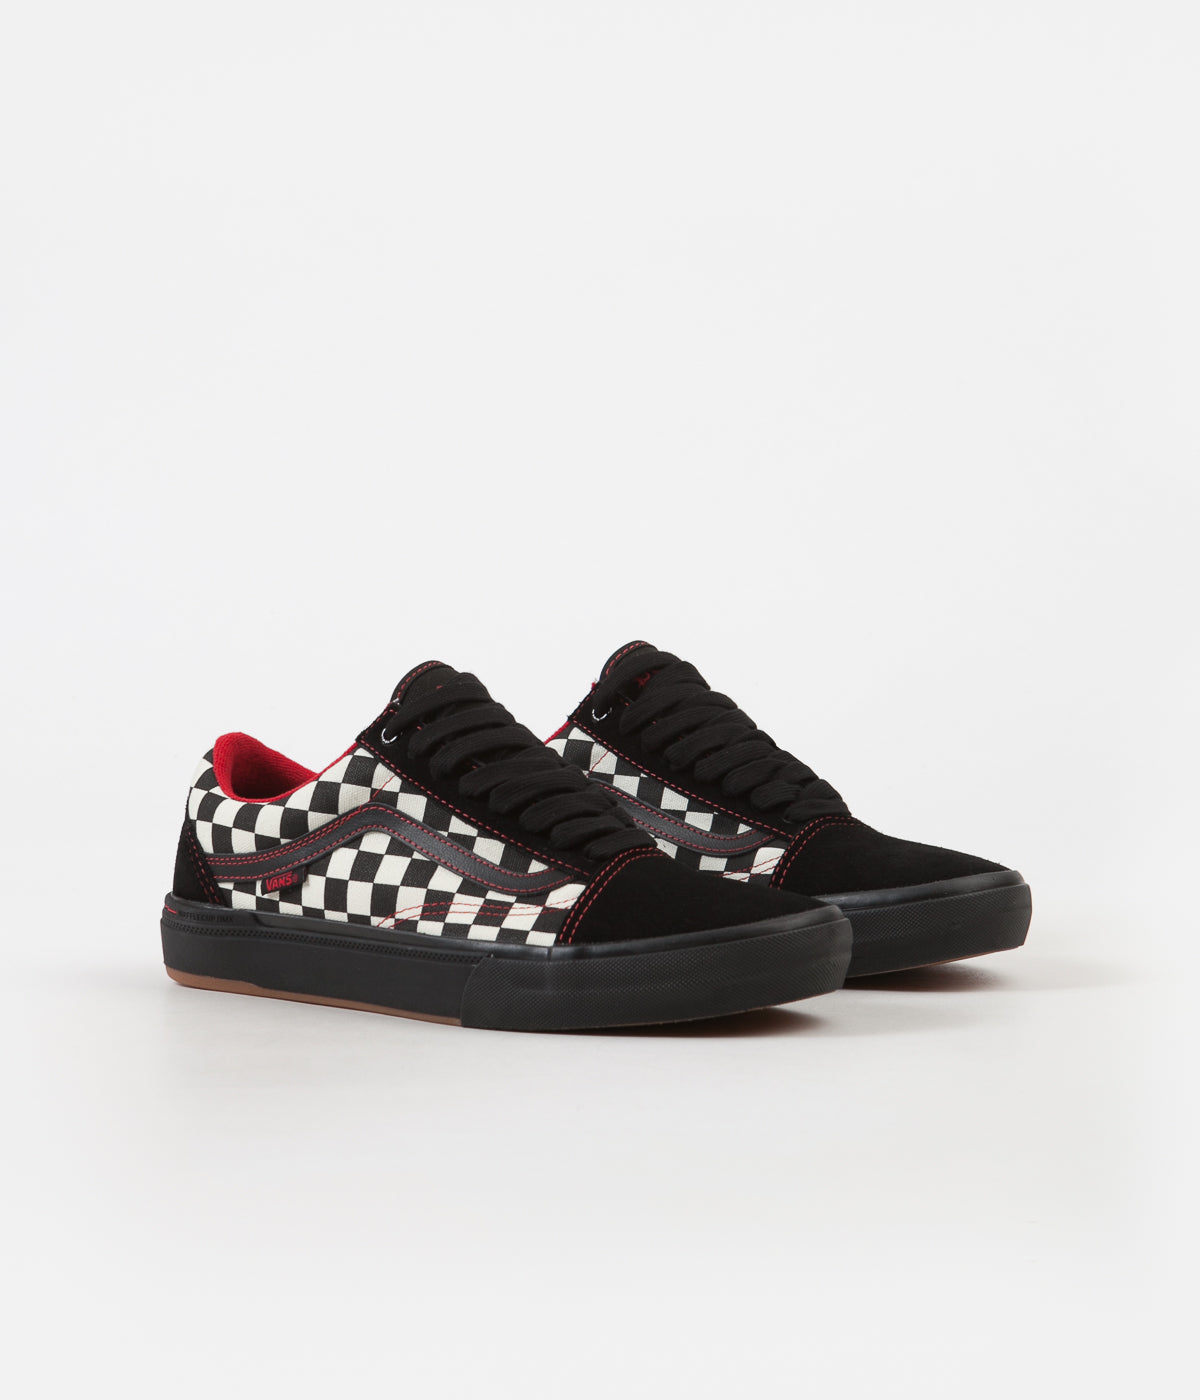 1f402e56bc87 ... Vans Old Skool Pro BMX Shoes - (Kevin Peraza) Black   Checkerboard ...